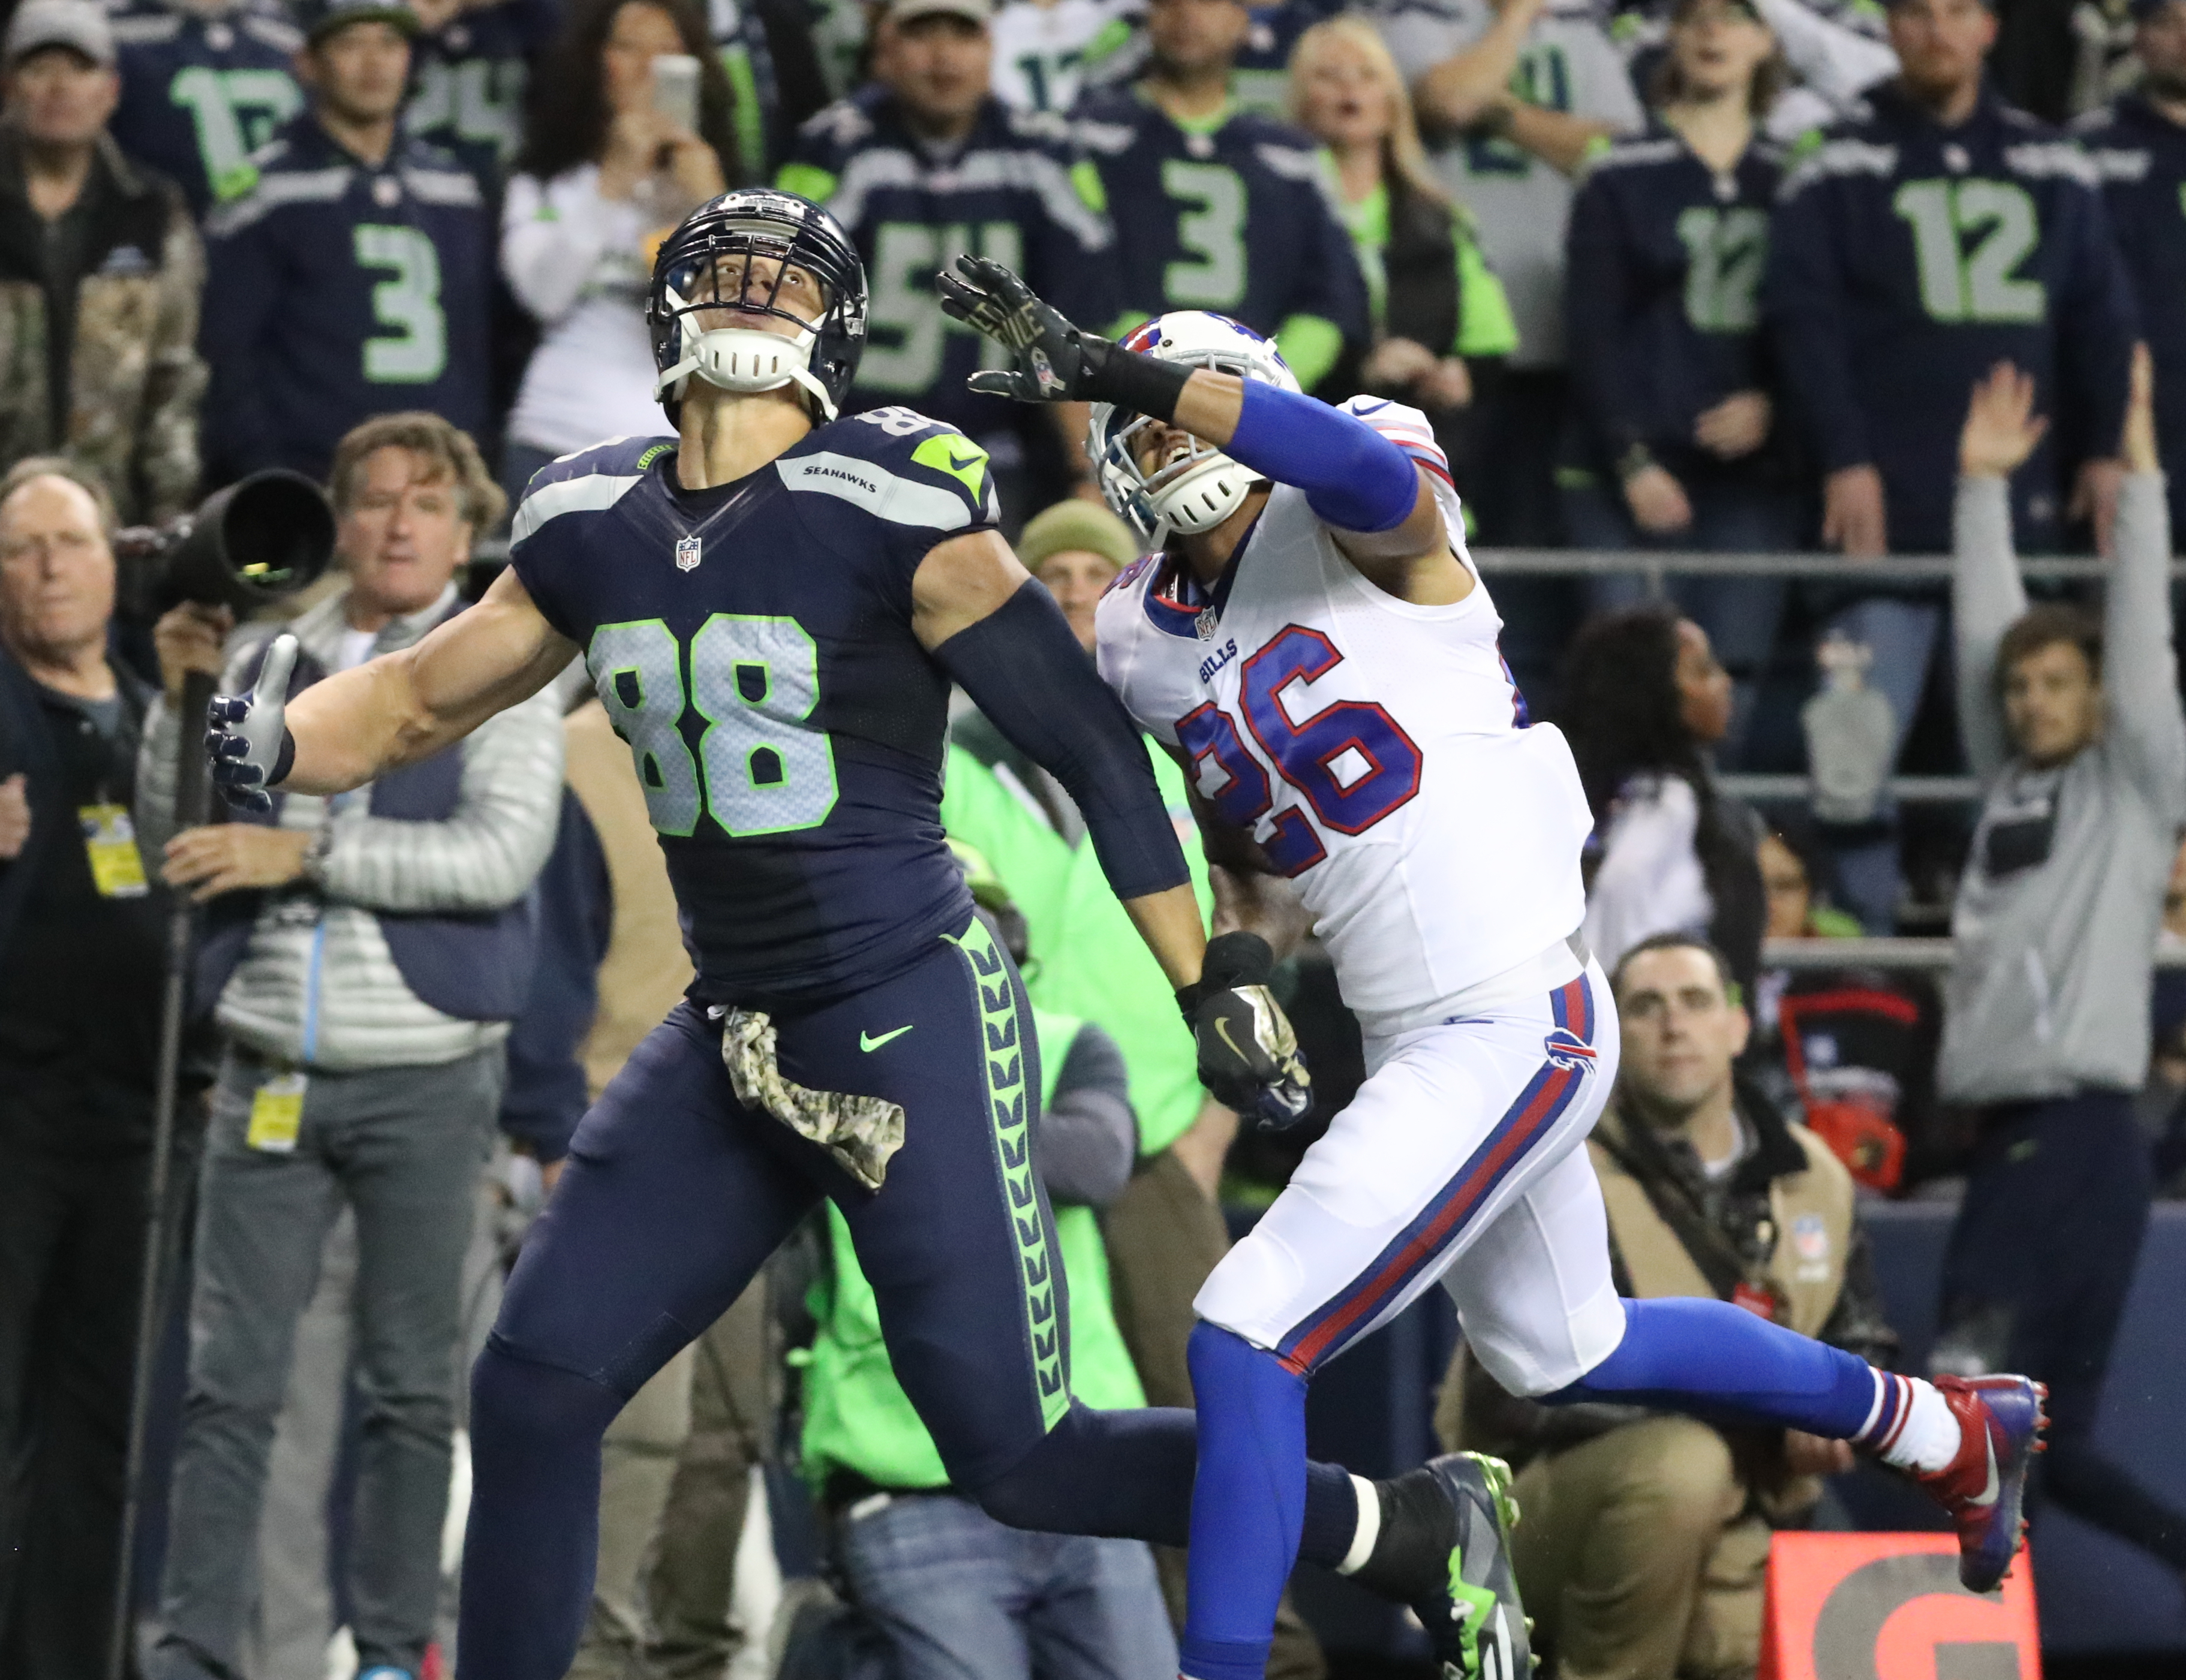 Bills strong safety Robert Blanton tries to defend  Seahawks tight end Jimmy Graham before Graham caught a touchdown pass in the second  quarter. (James P. McCoy/Buffalo News)